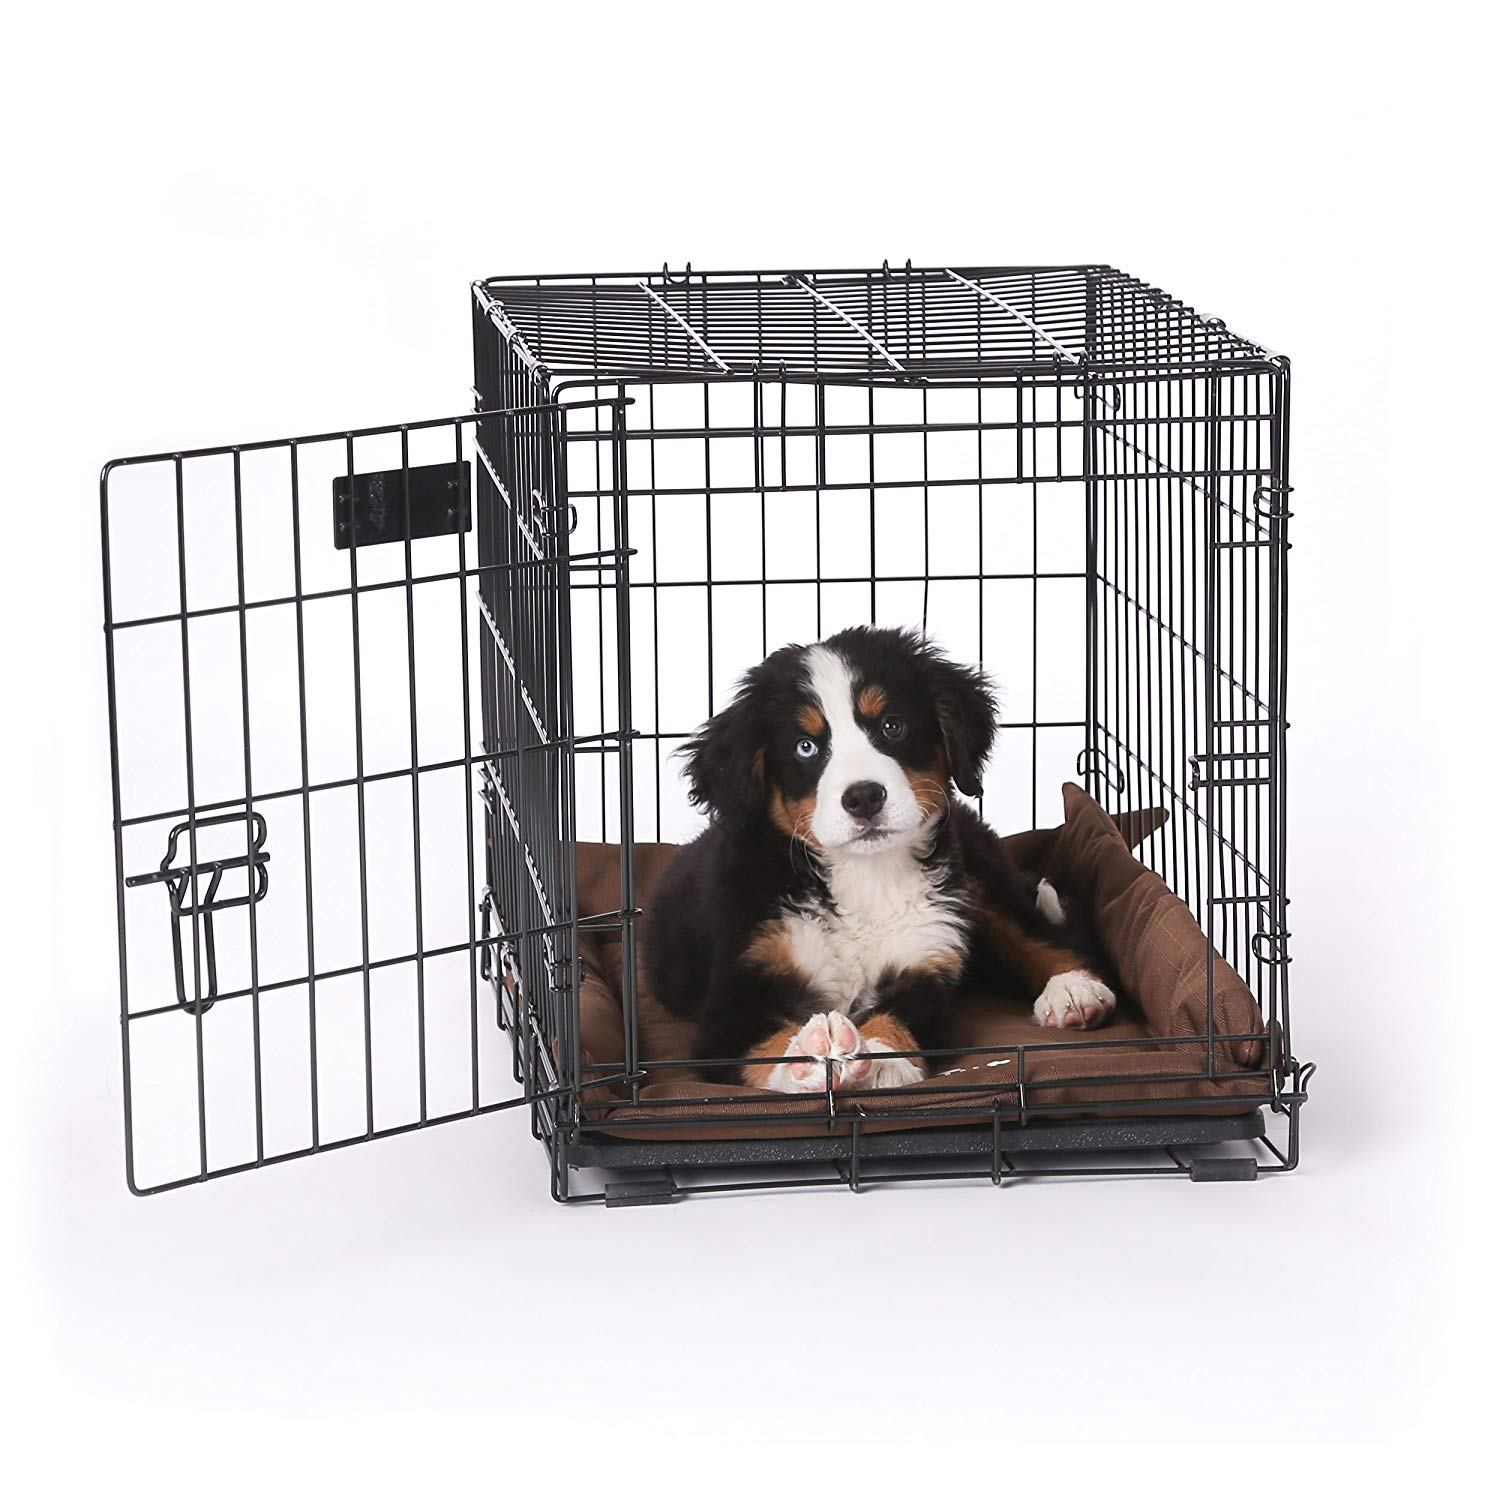 "K&H Pet Products K-9 Ruff n' Tuff Crate Pad Small Chocolate (20"" x 25"") - 1260 Denier Rip-Stop Polyester for Pets That Need Extra Tough Fabric"